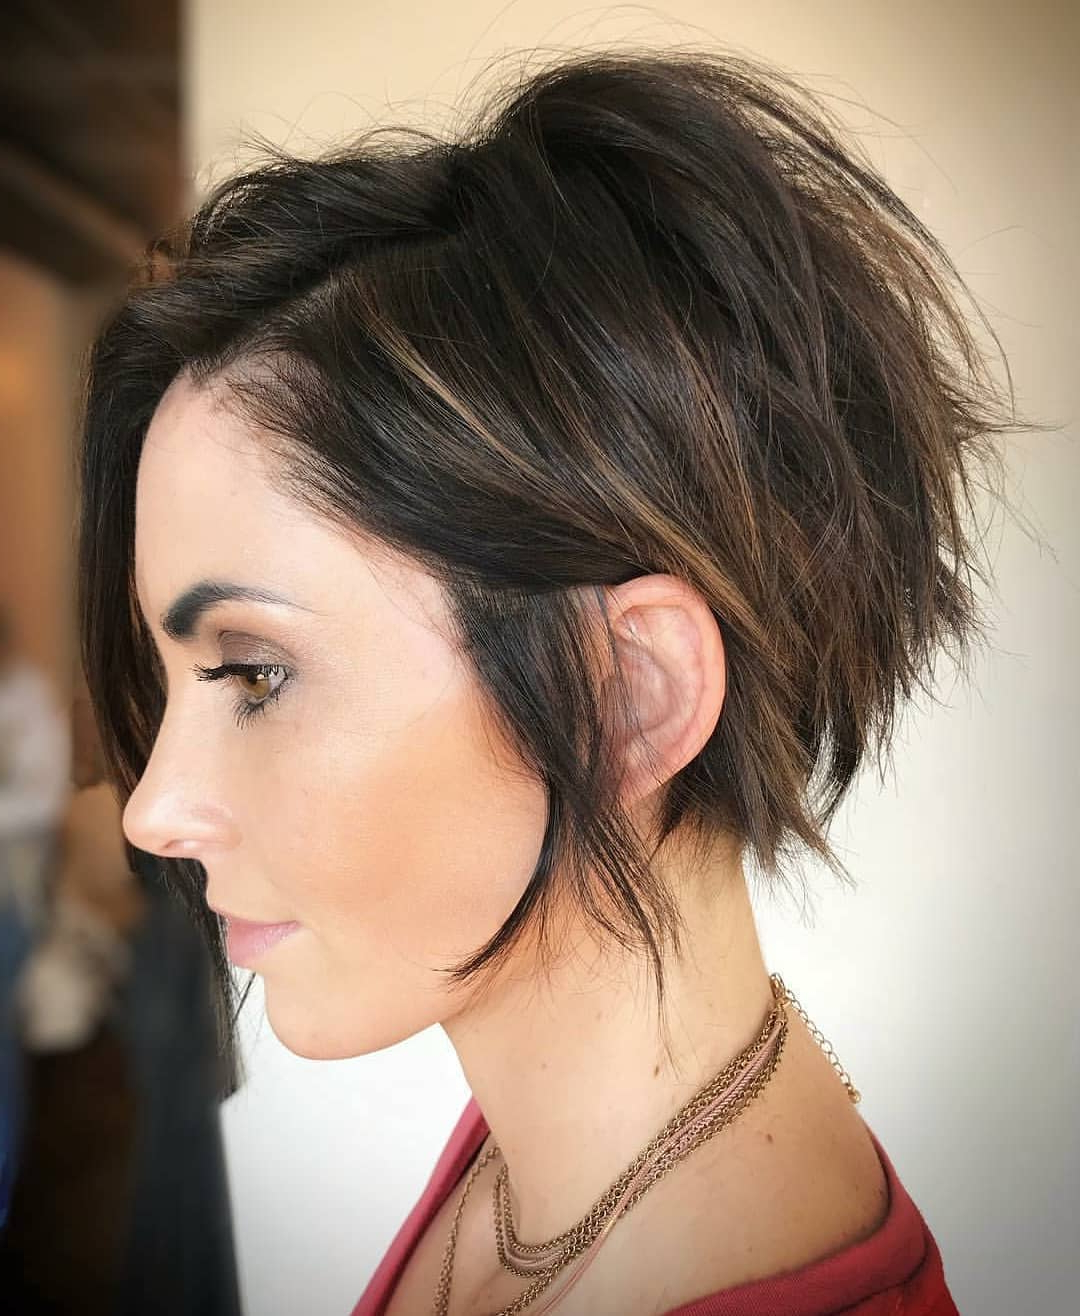 10 Fab Short Hairstyles With Texture & Color, 2018 Women Short Haircuts Pertaining To Posh Spice Short Hairstyles (View 2 of 25)